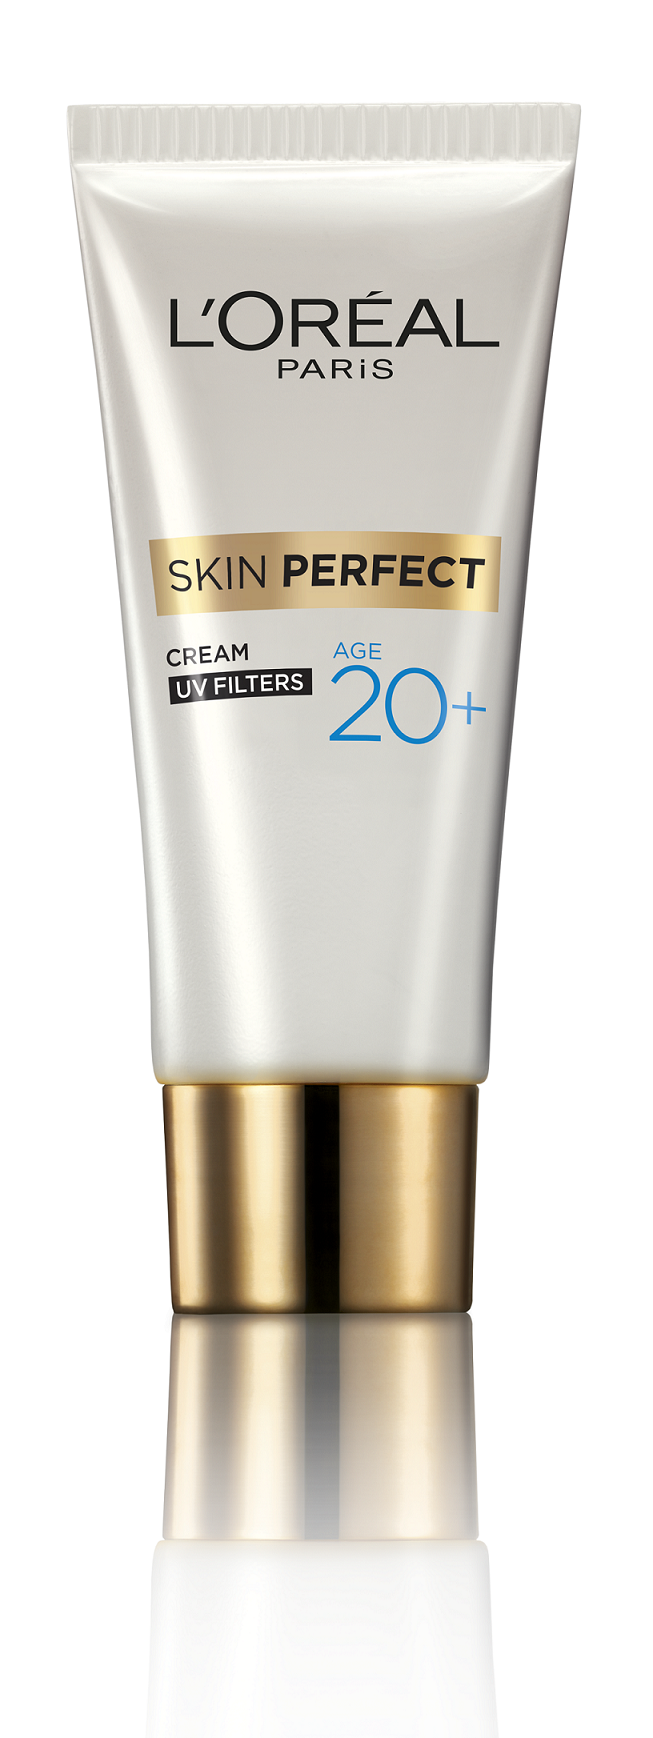 L'Oreal Paris Age 20+ Skin Perfect Cream UV Filters  available at Nykaa for Rs.99